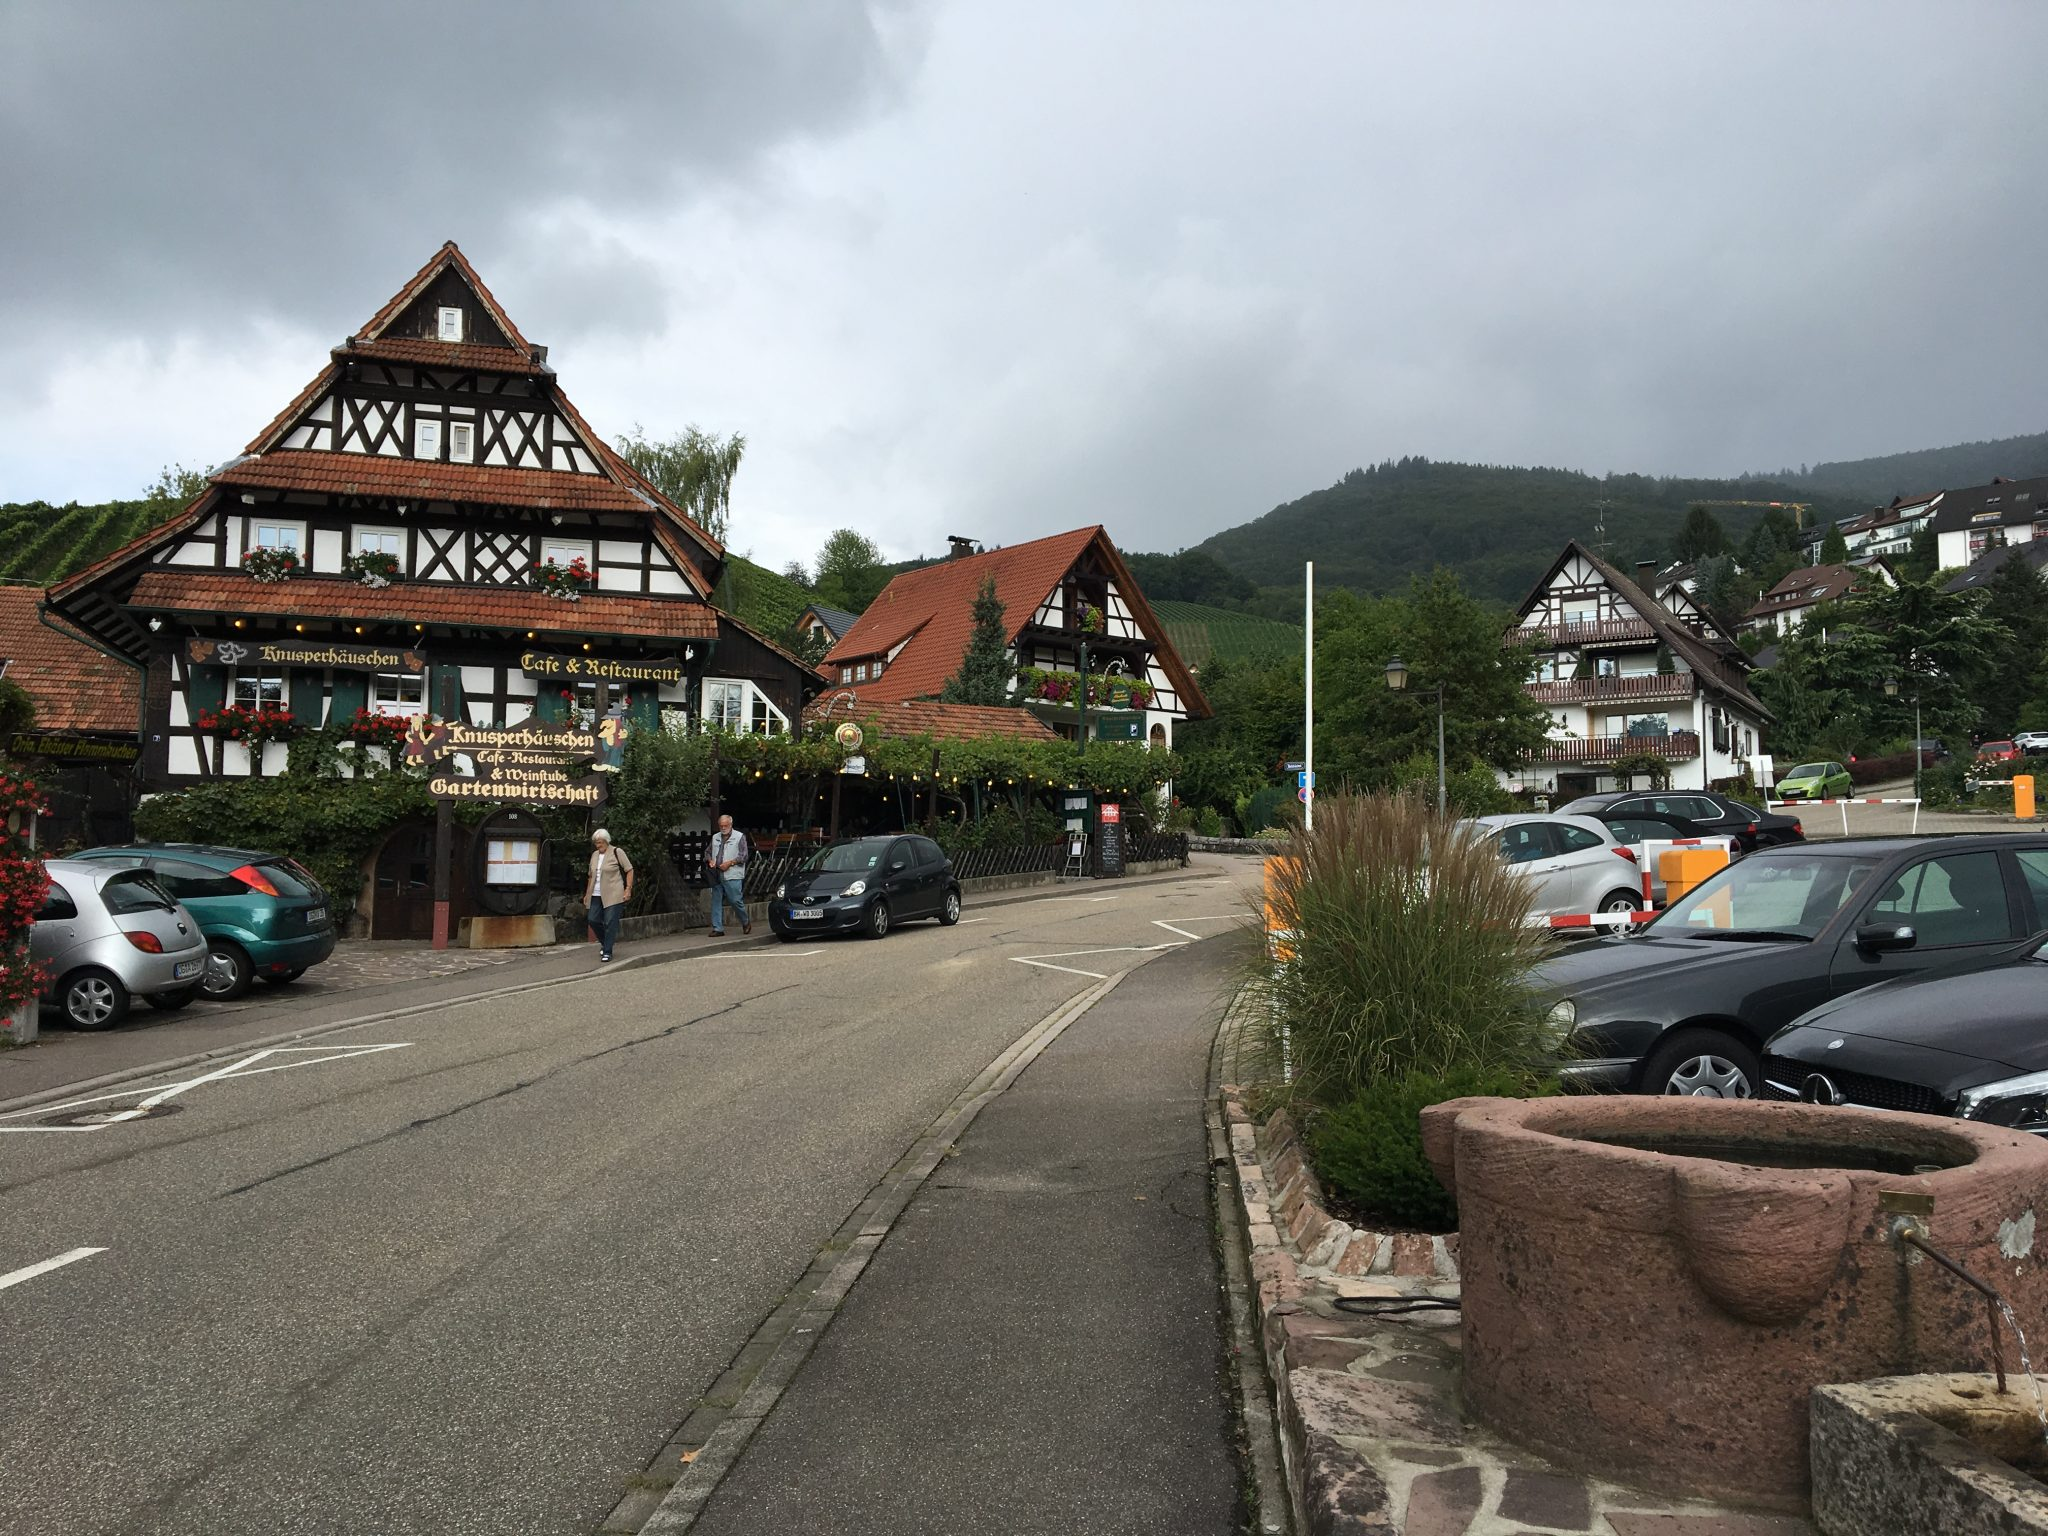 Knusperhäuschen Sasbachwalden Breathtaking Black Forest escorted motorhome tour